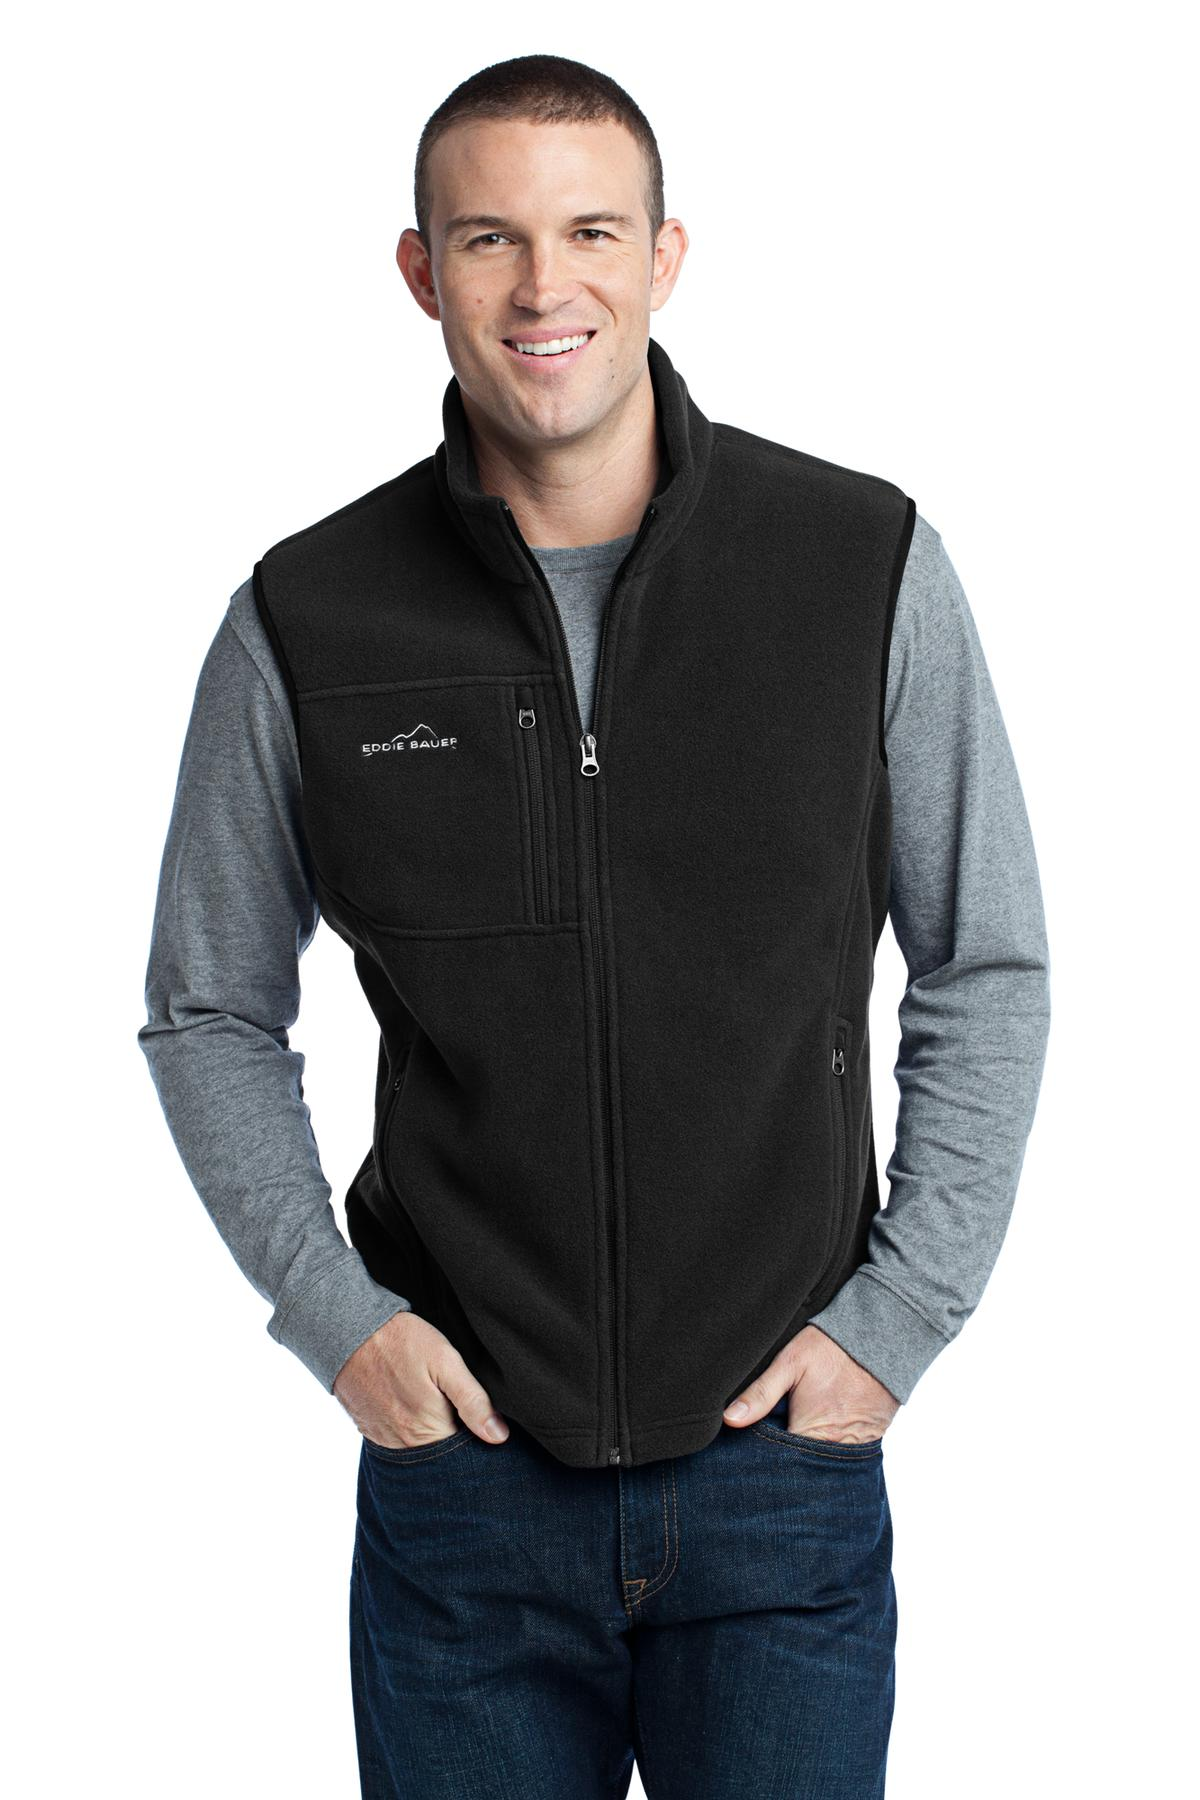 Eddie Bauer ®  - Fleece Vest. EB204 - Black